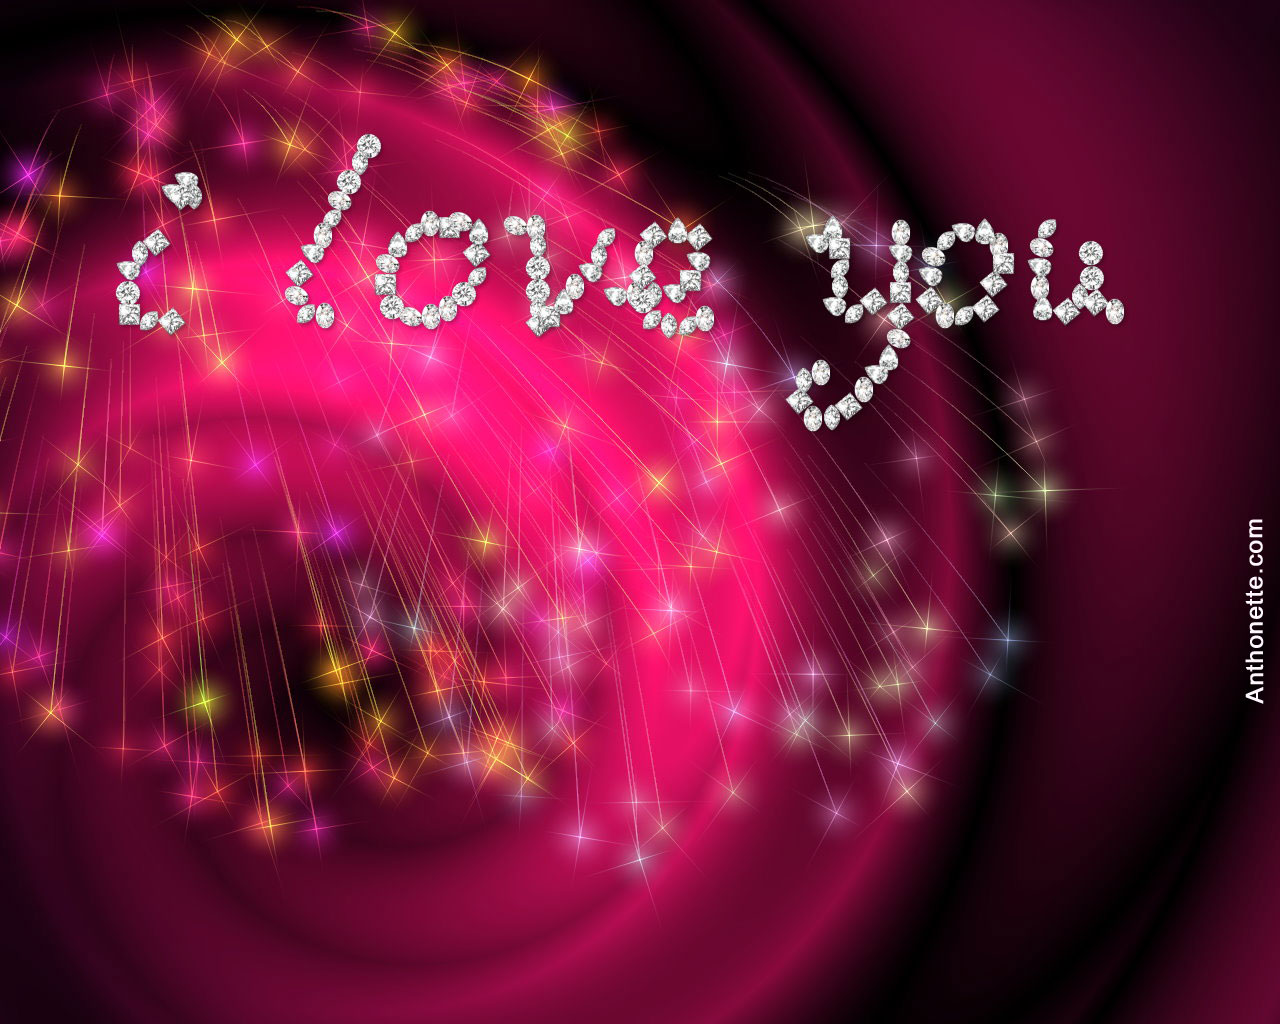 http://2.bp.blogspot.com/-1KEabLF8Juo/UDTMlW3ba2I/AAAAAAAACgM/EUEe2GYs4y4/s1600/love_wallpapers_for_cell_phones_i_love_you-12606.jpg